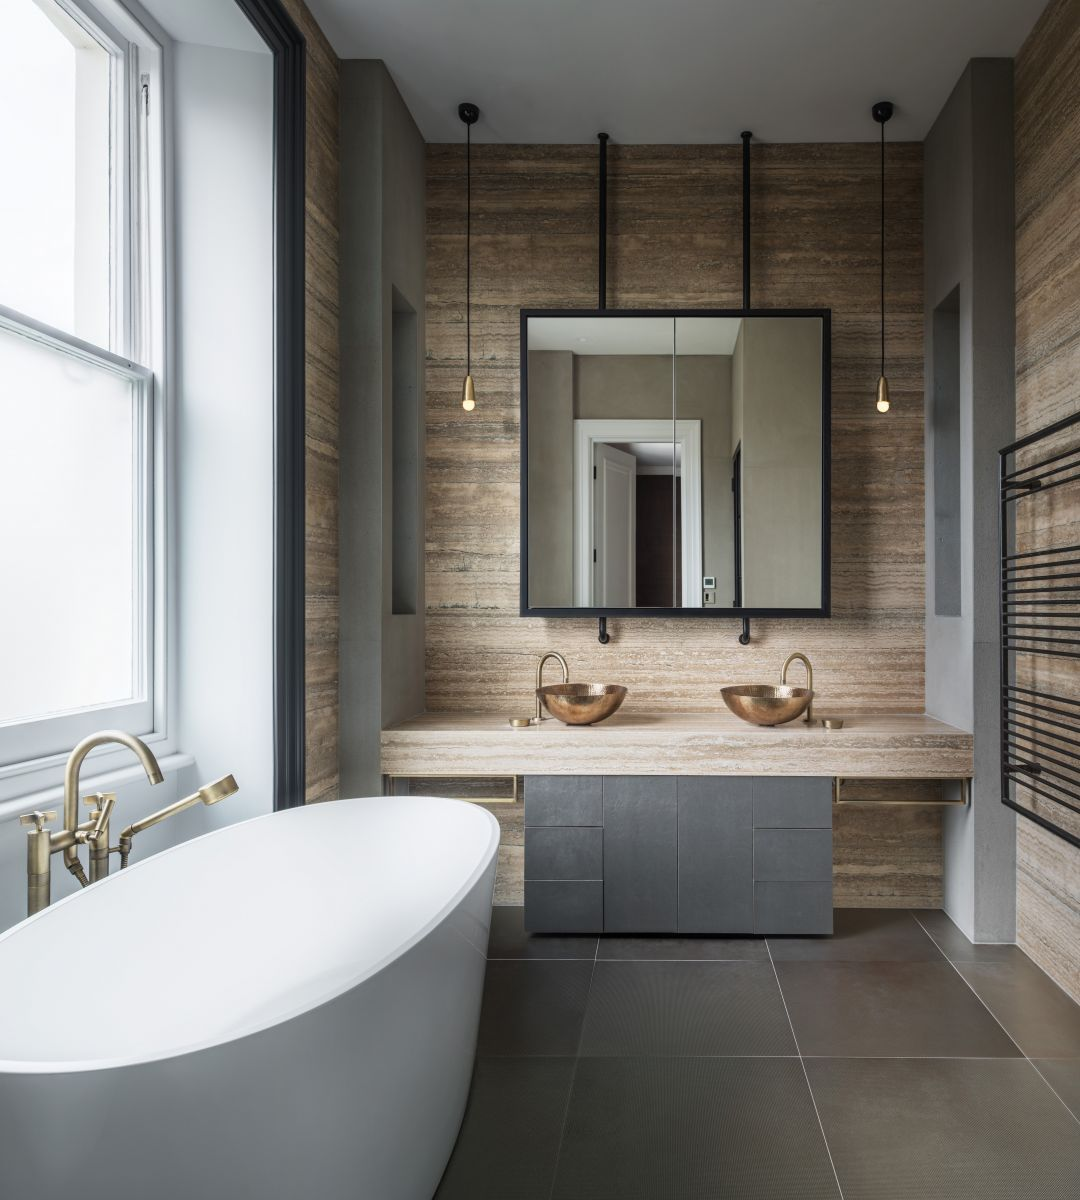 """The London bathroom shown here is by interior designer Roselind Wilson. It features taps by The Watermark Collection as part of a look she's described as """"sophisticated-industrial"""". The taps, from the 'Zen' and 'London' collections, are in a Vintage Brass finish and share an architectural simplicity of form thewatermarkcollection.eu"""